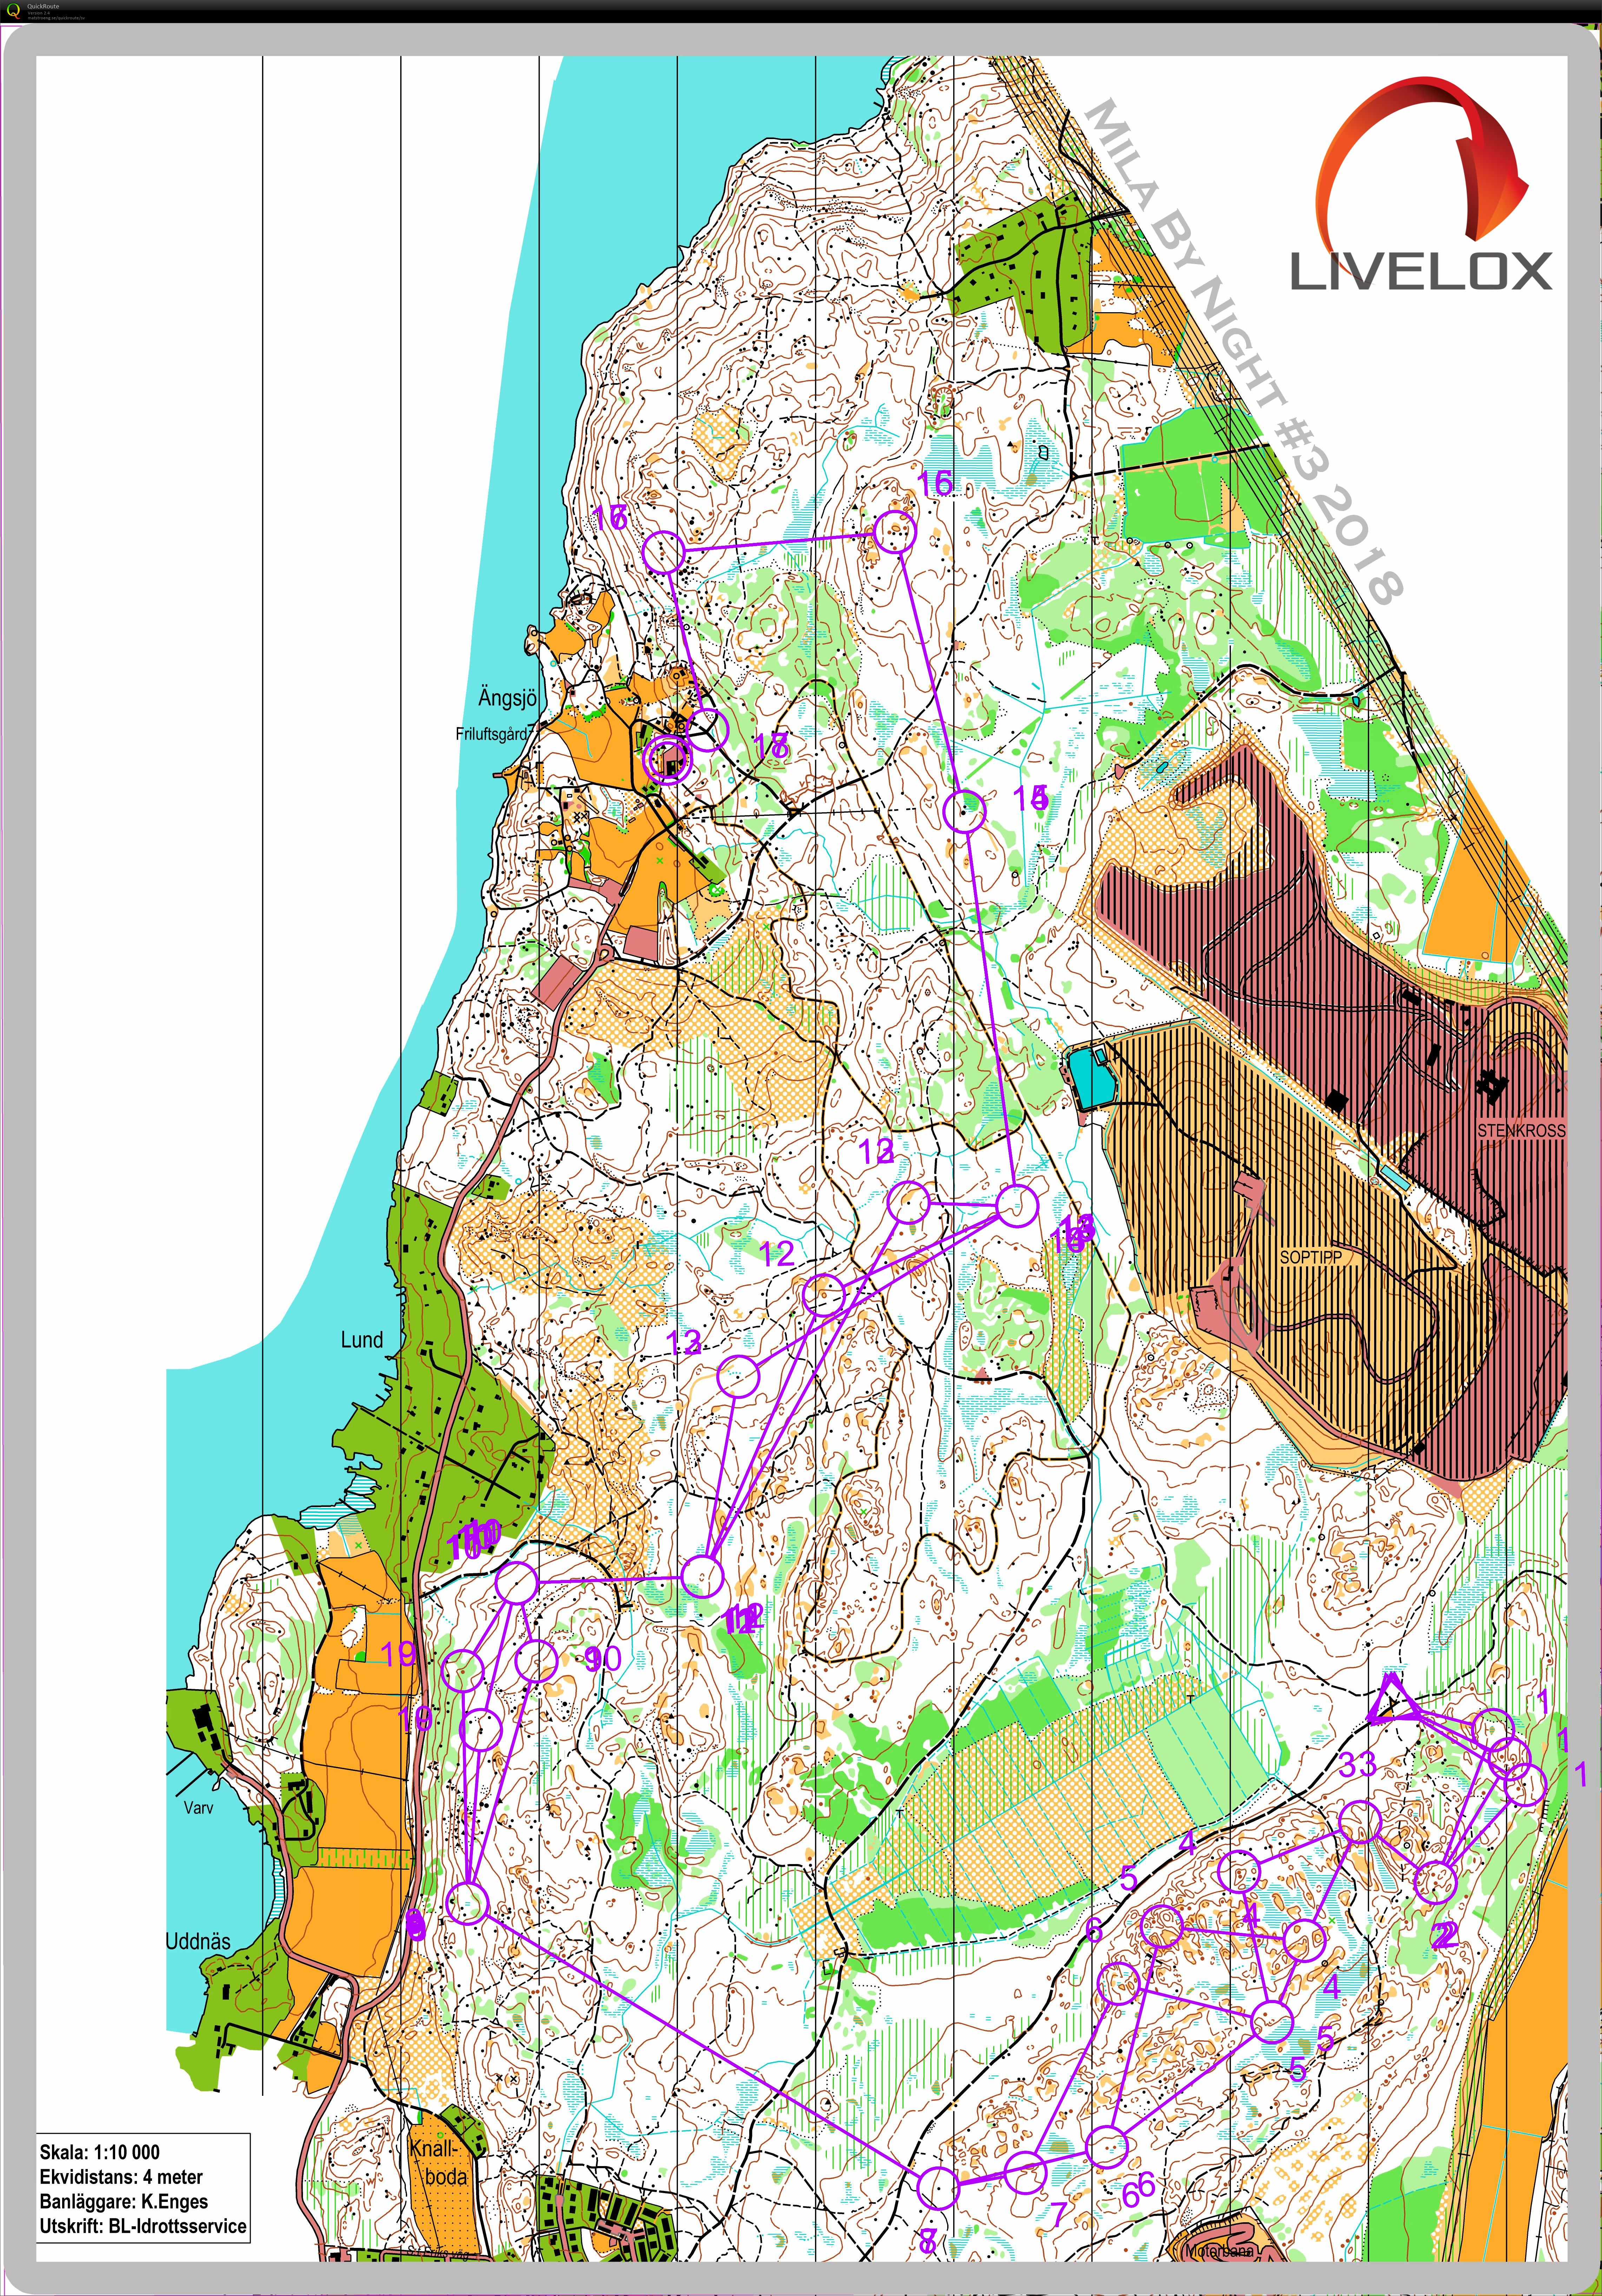 Mila Stockholm by night 3 January 10th 2018 Orienteering Map